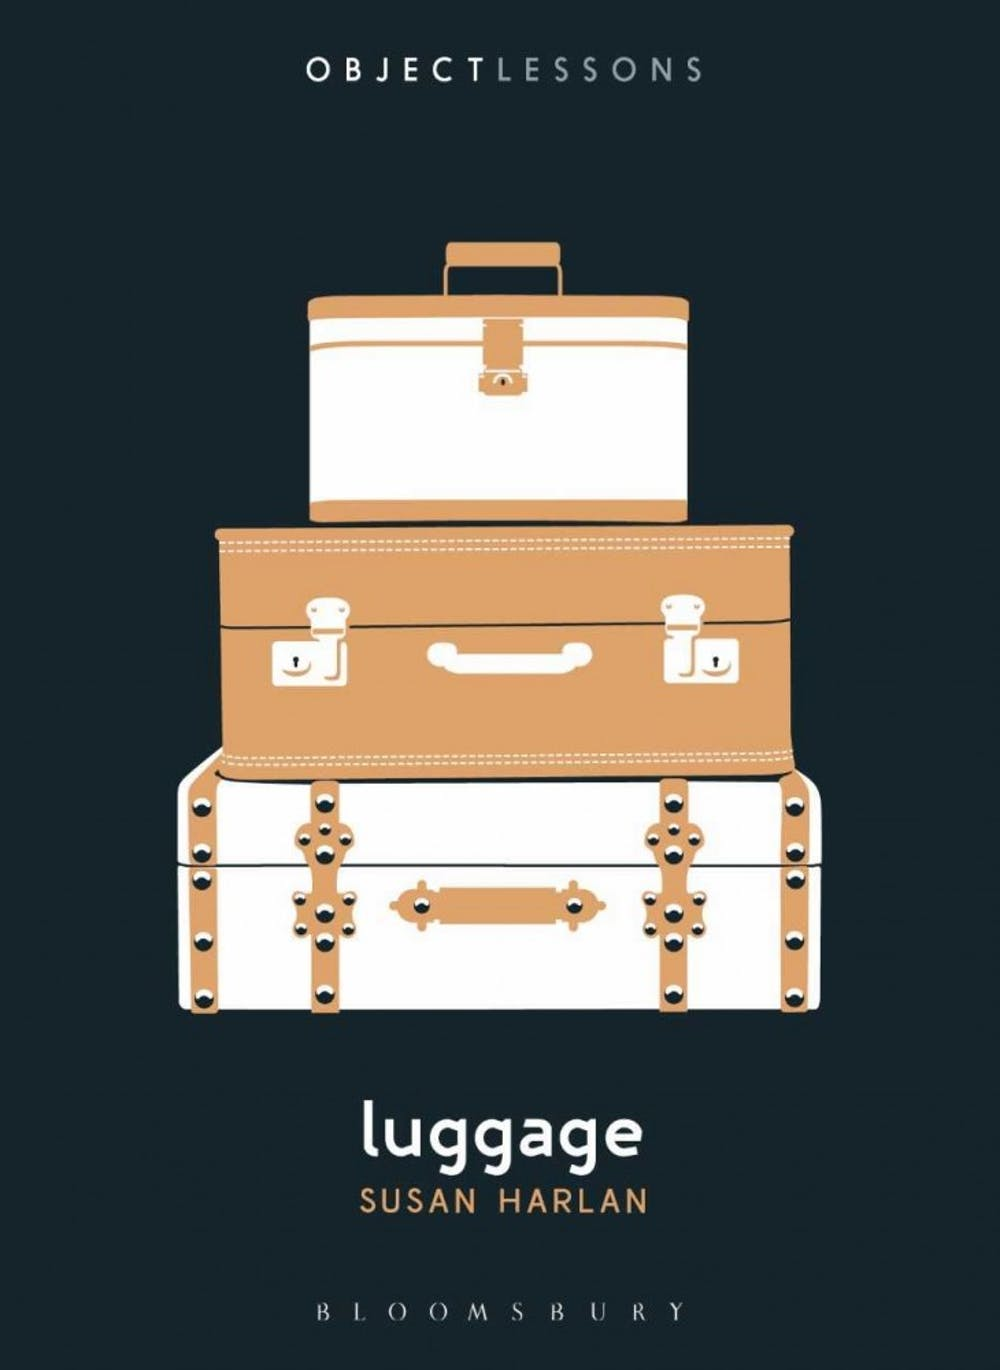 Author Susan Harlan gets inspiration from traveling and a vintage luggage collection